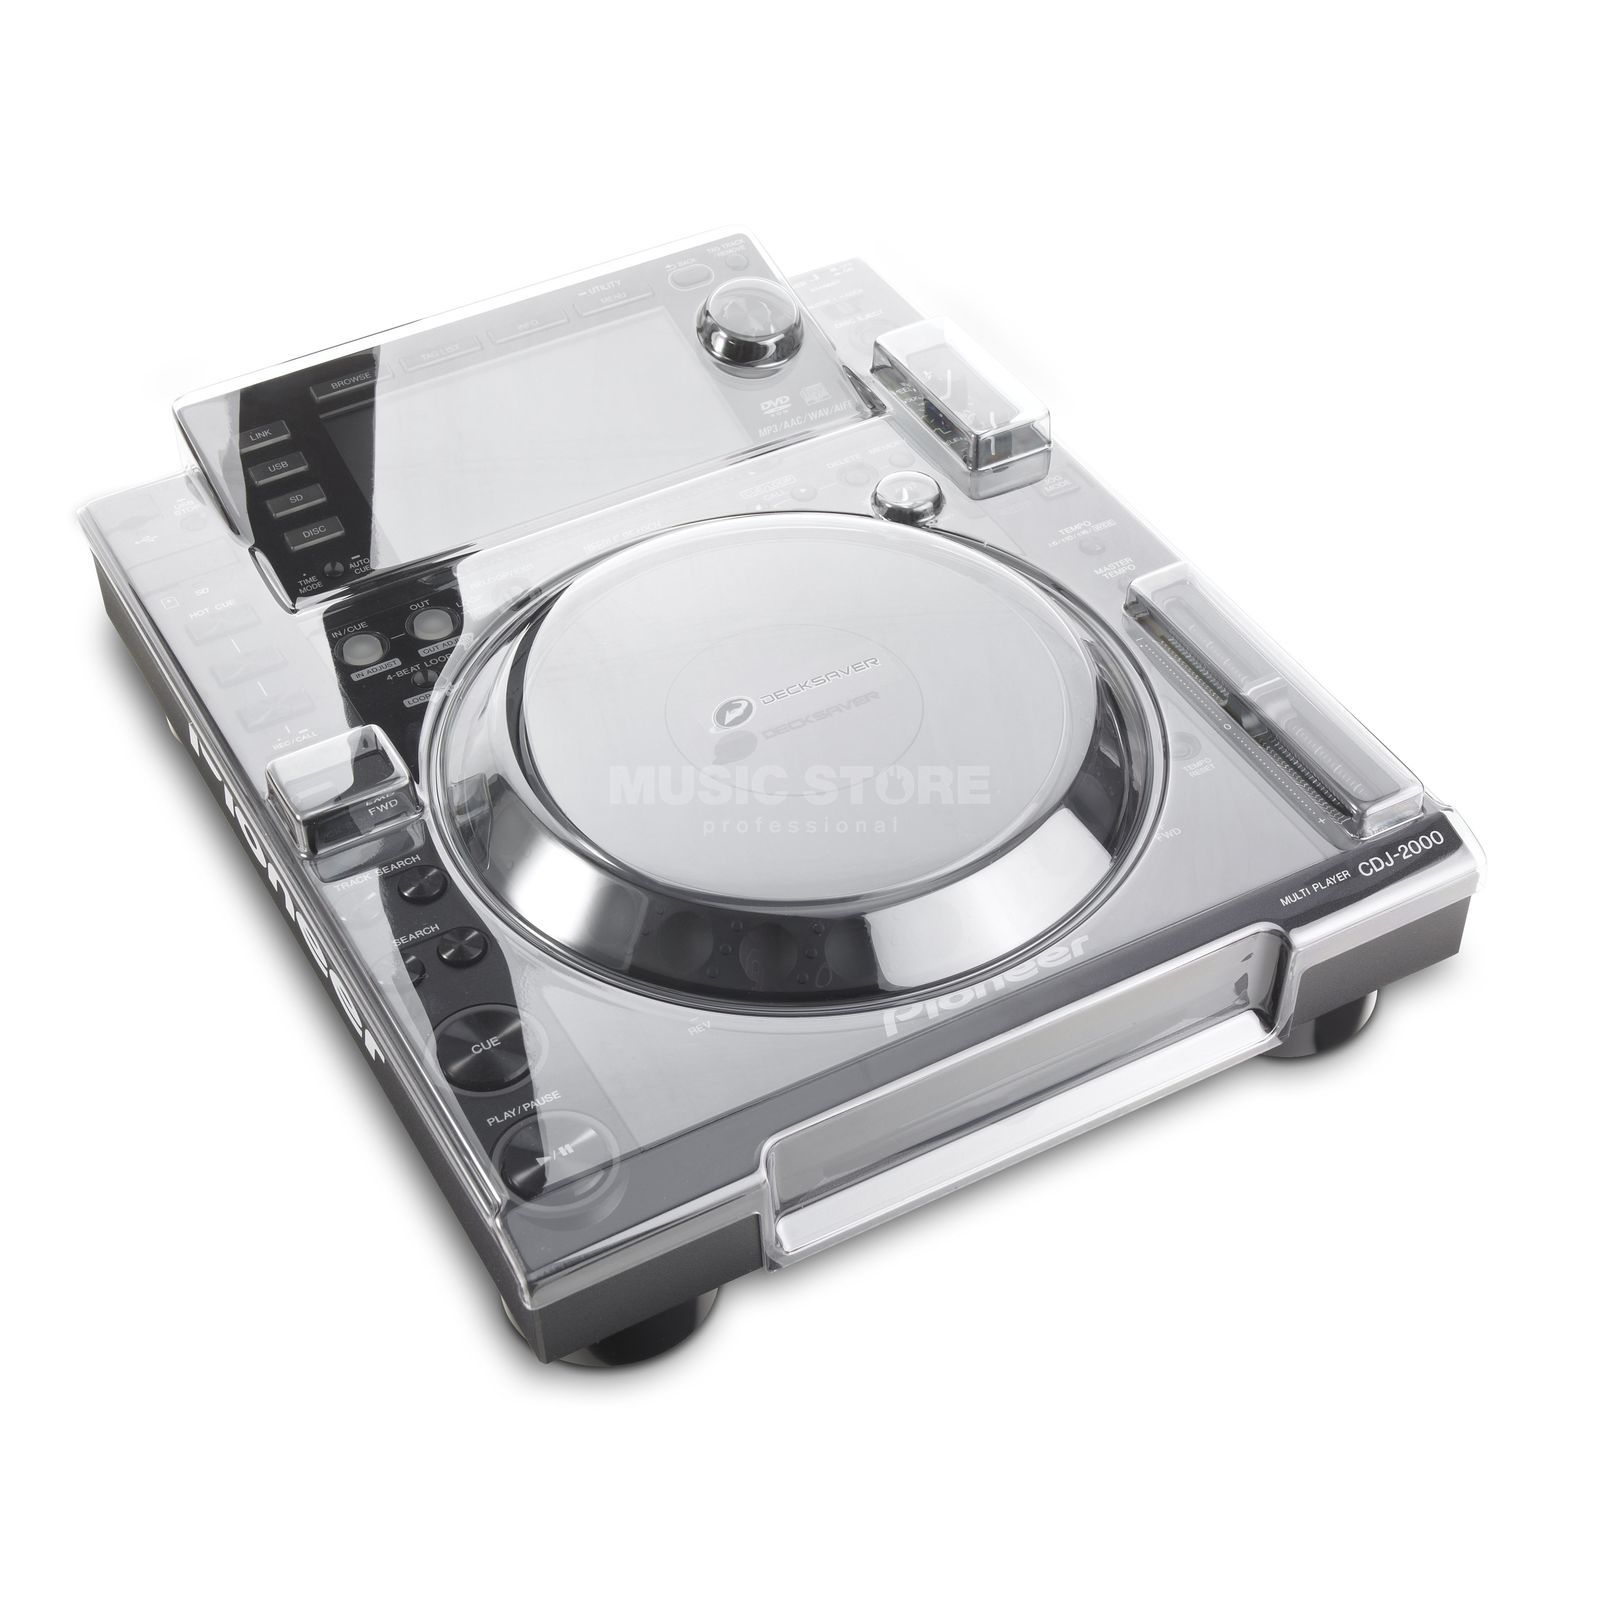 Decksaver Dust Cover CDJ 2000  Product Image